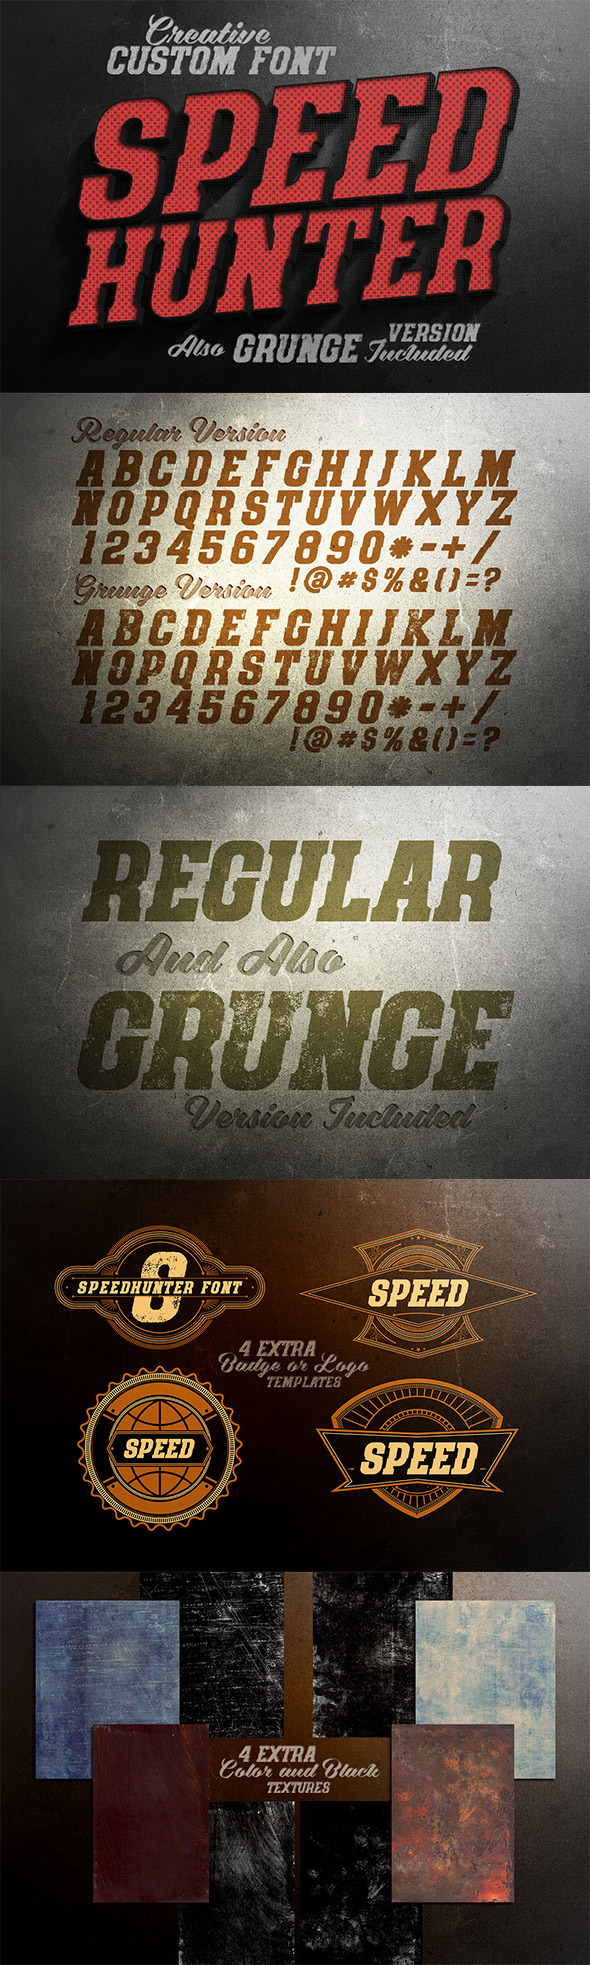 SpeedHunter Custom Font - Miscellaneous Serif